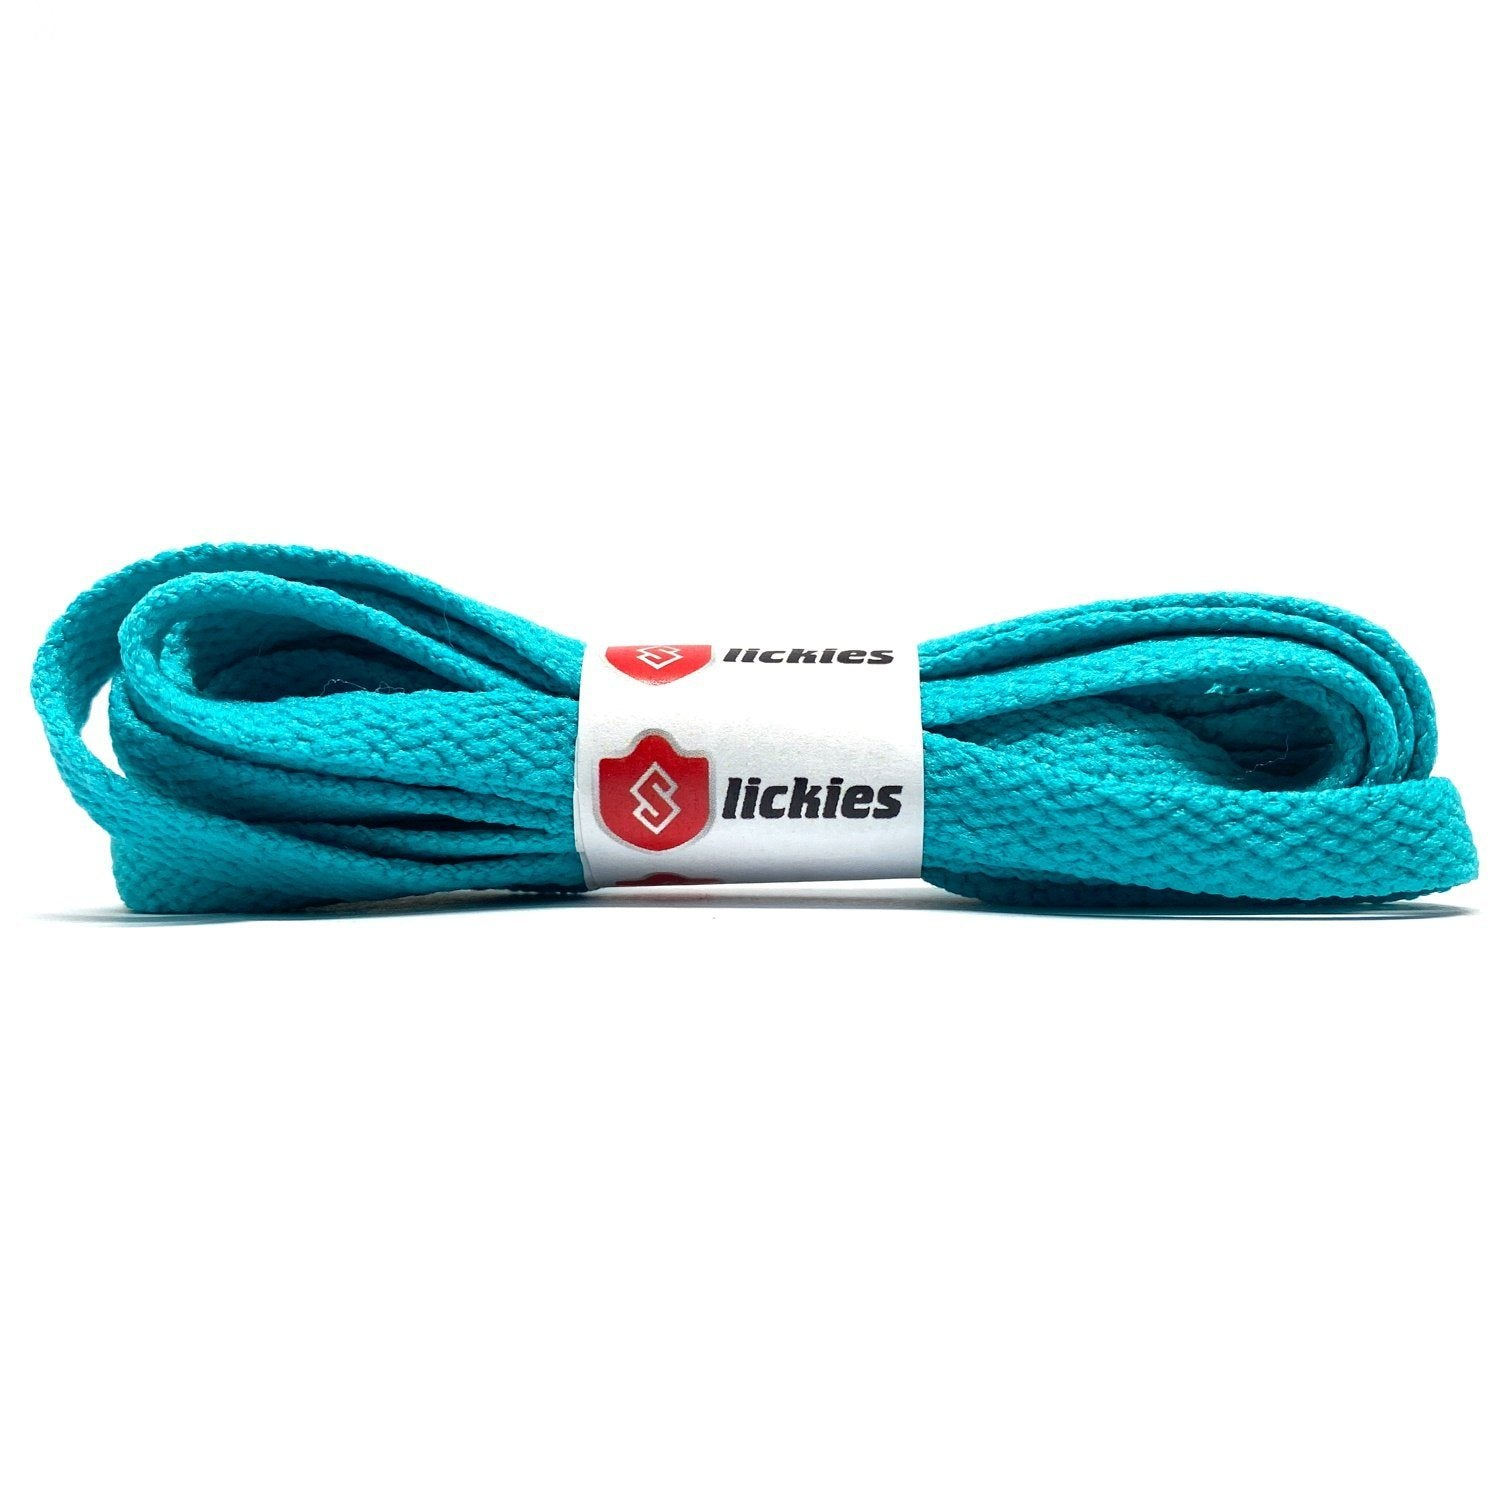 Flat Thin - BASICS Flat Thin Laces - Teal